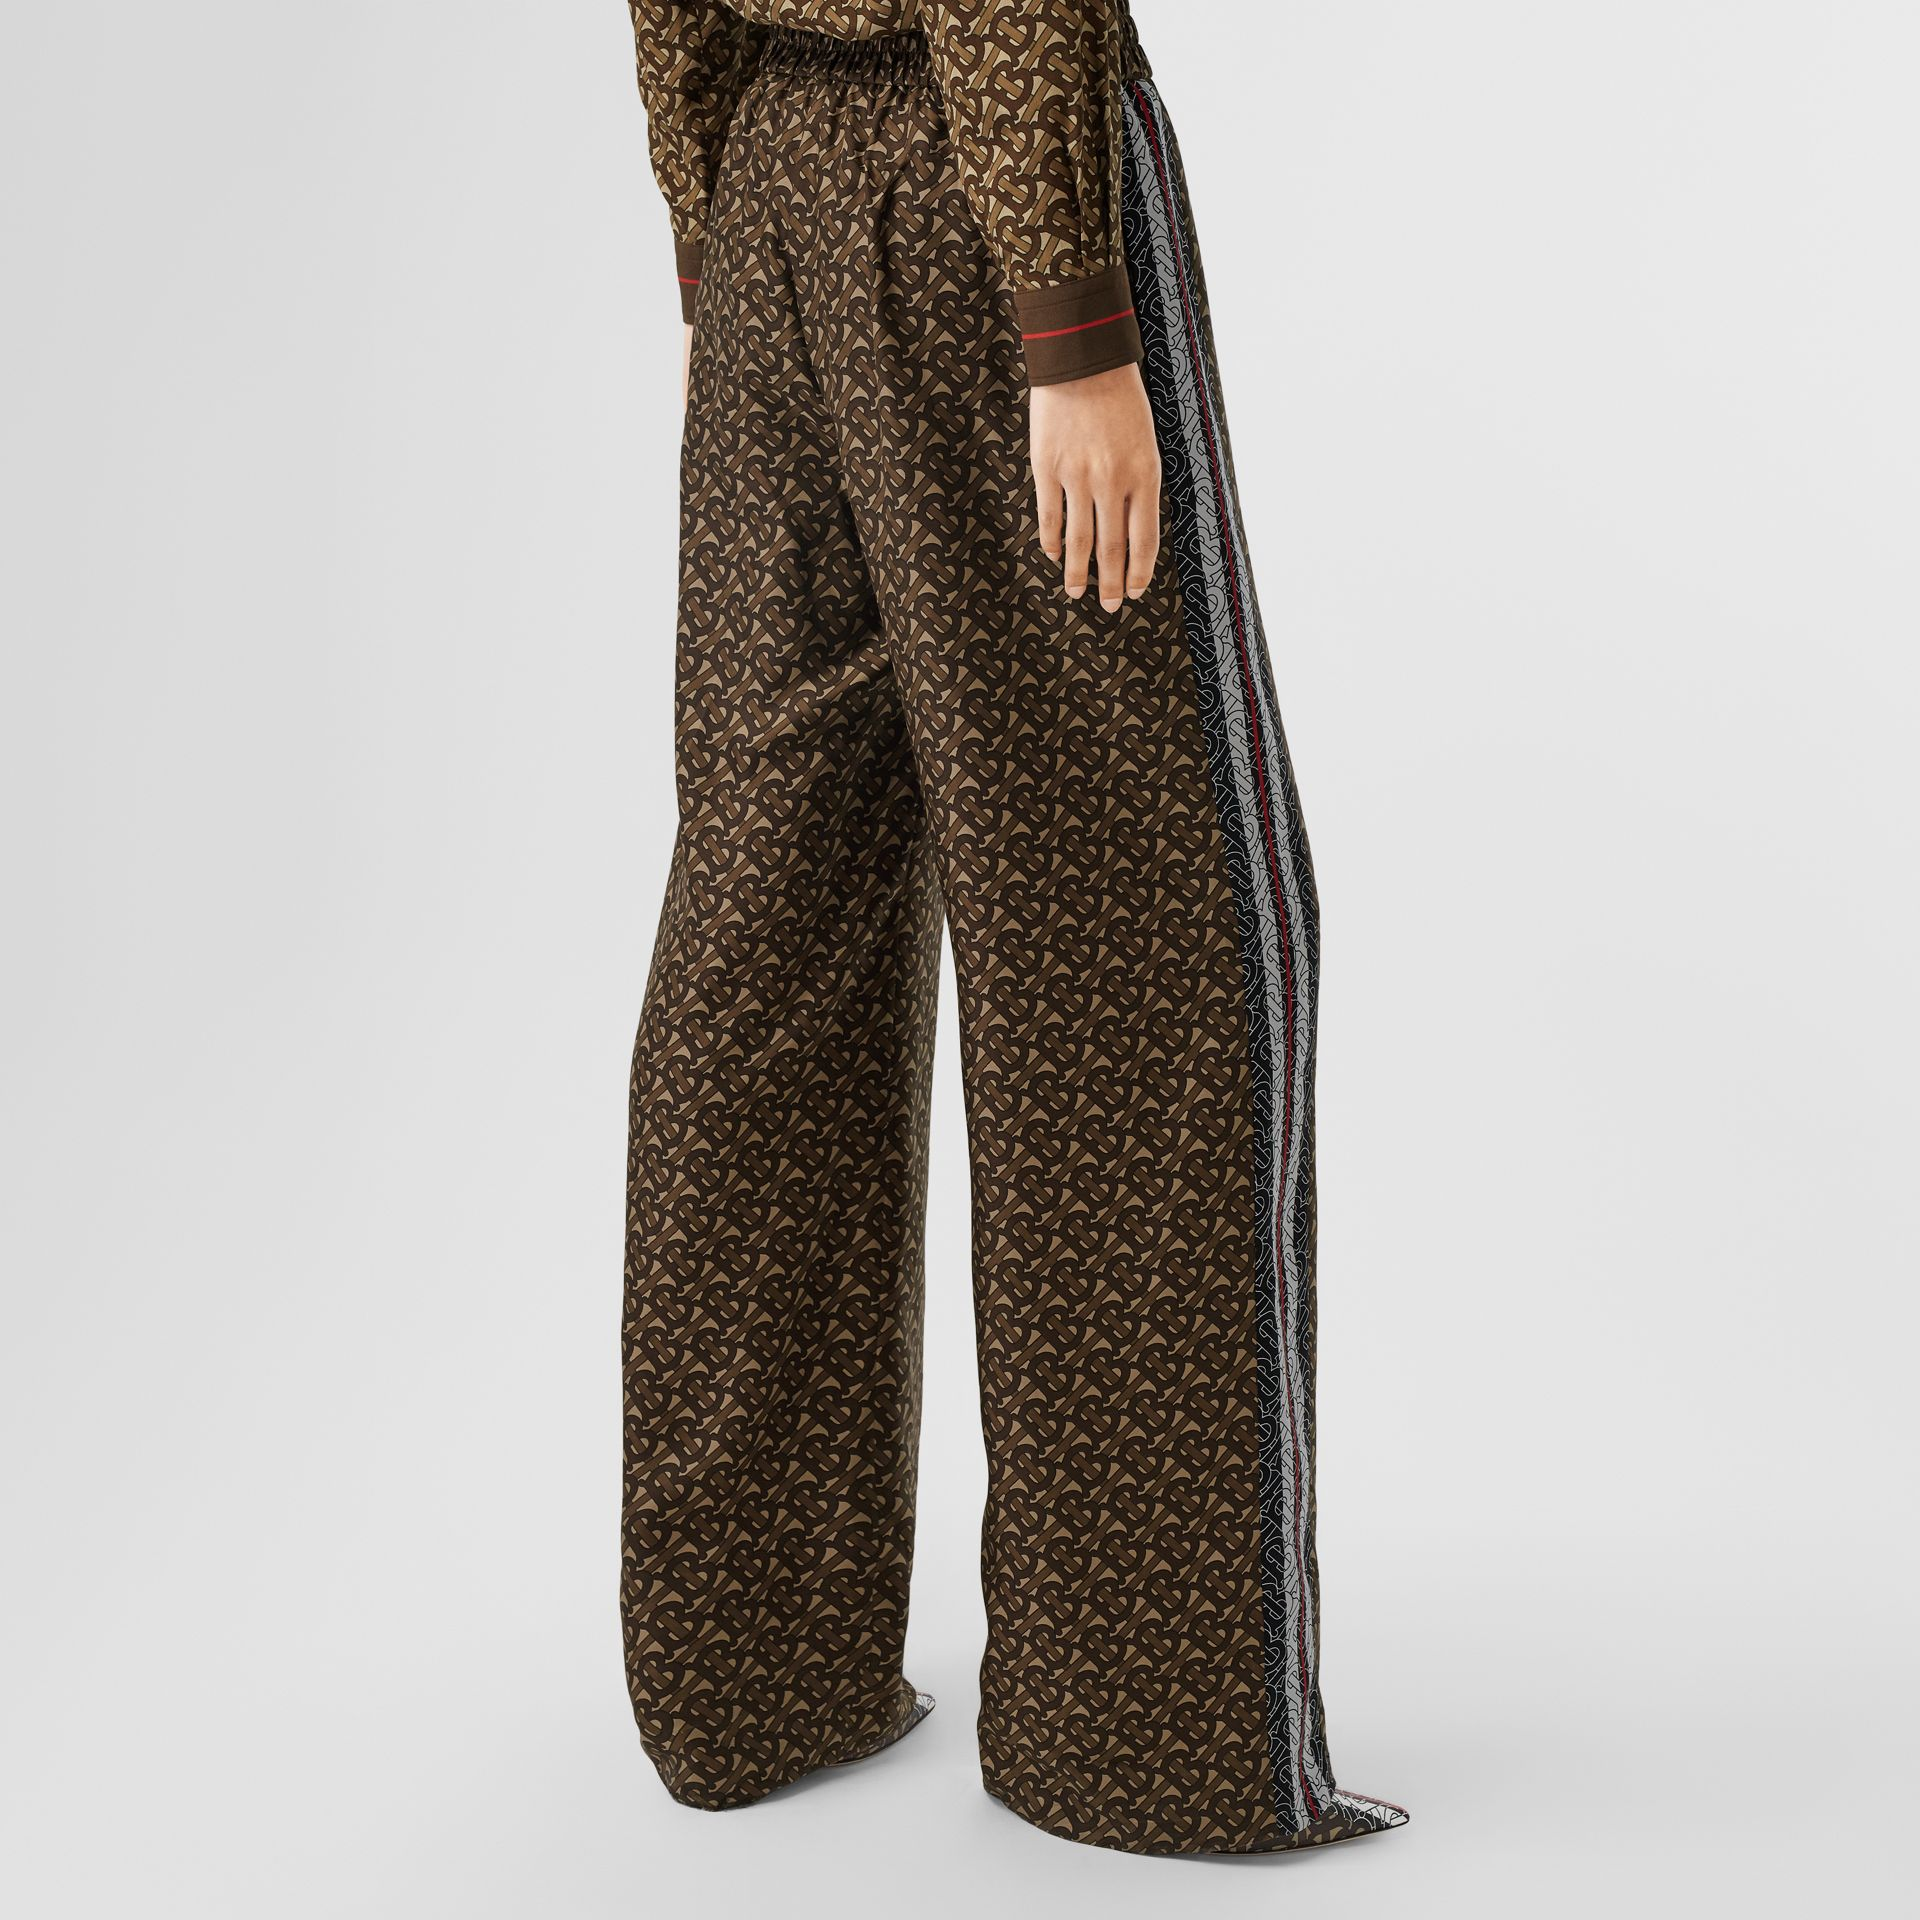 Monogram Stripe Print Silk Trousers in Bridle Brown - Women | Burberry - gallery image 4